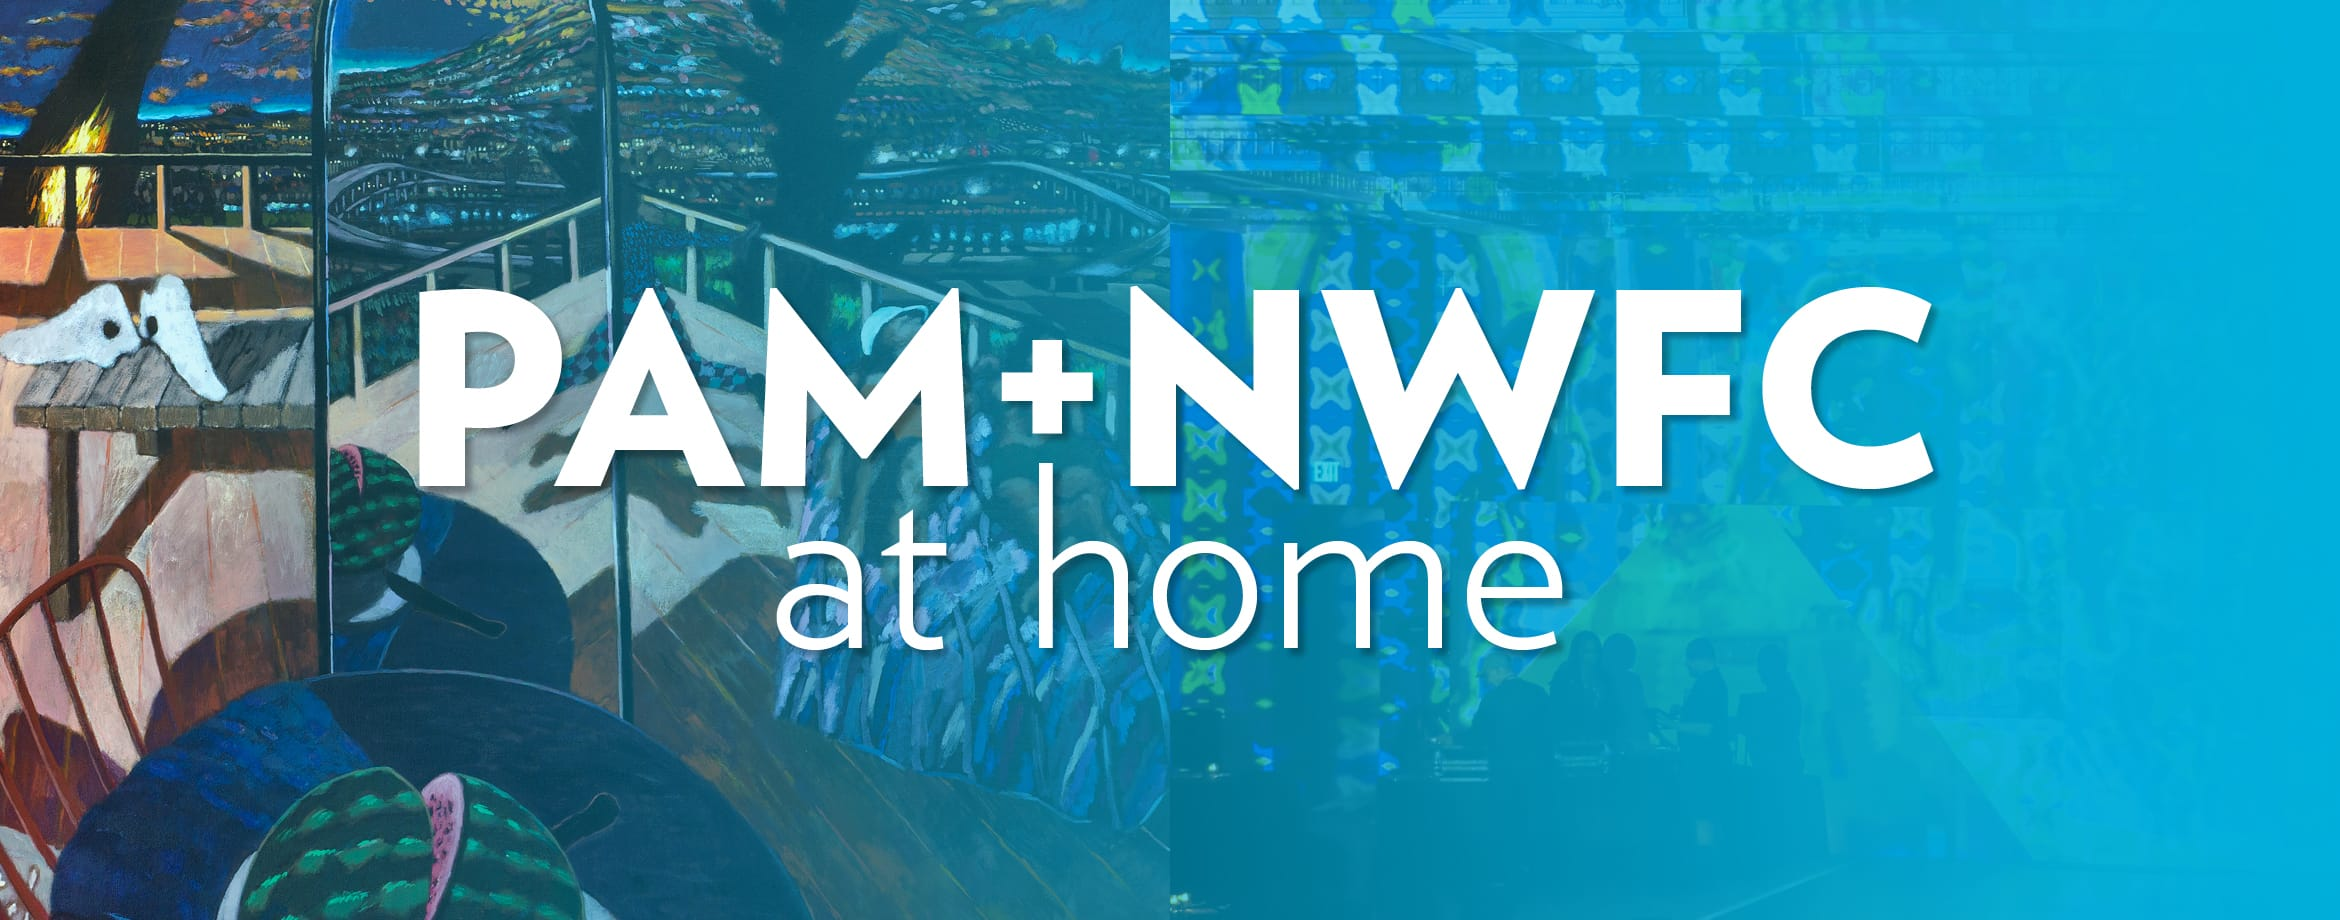 PAM + NWFC at home